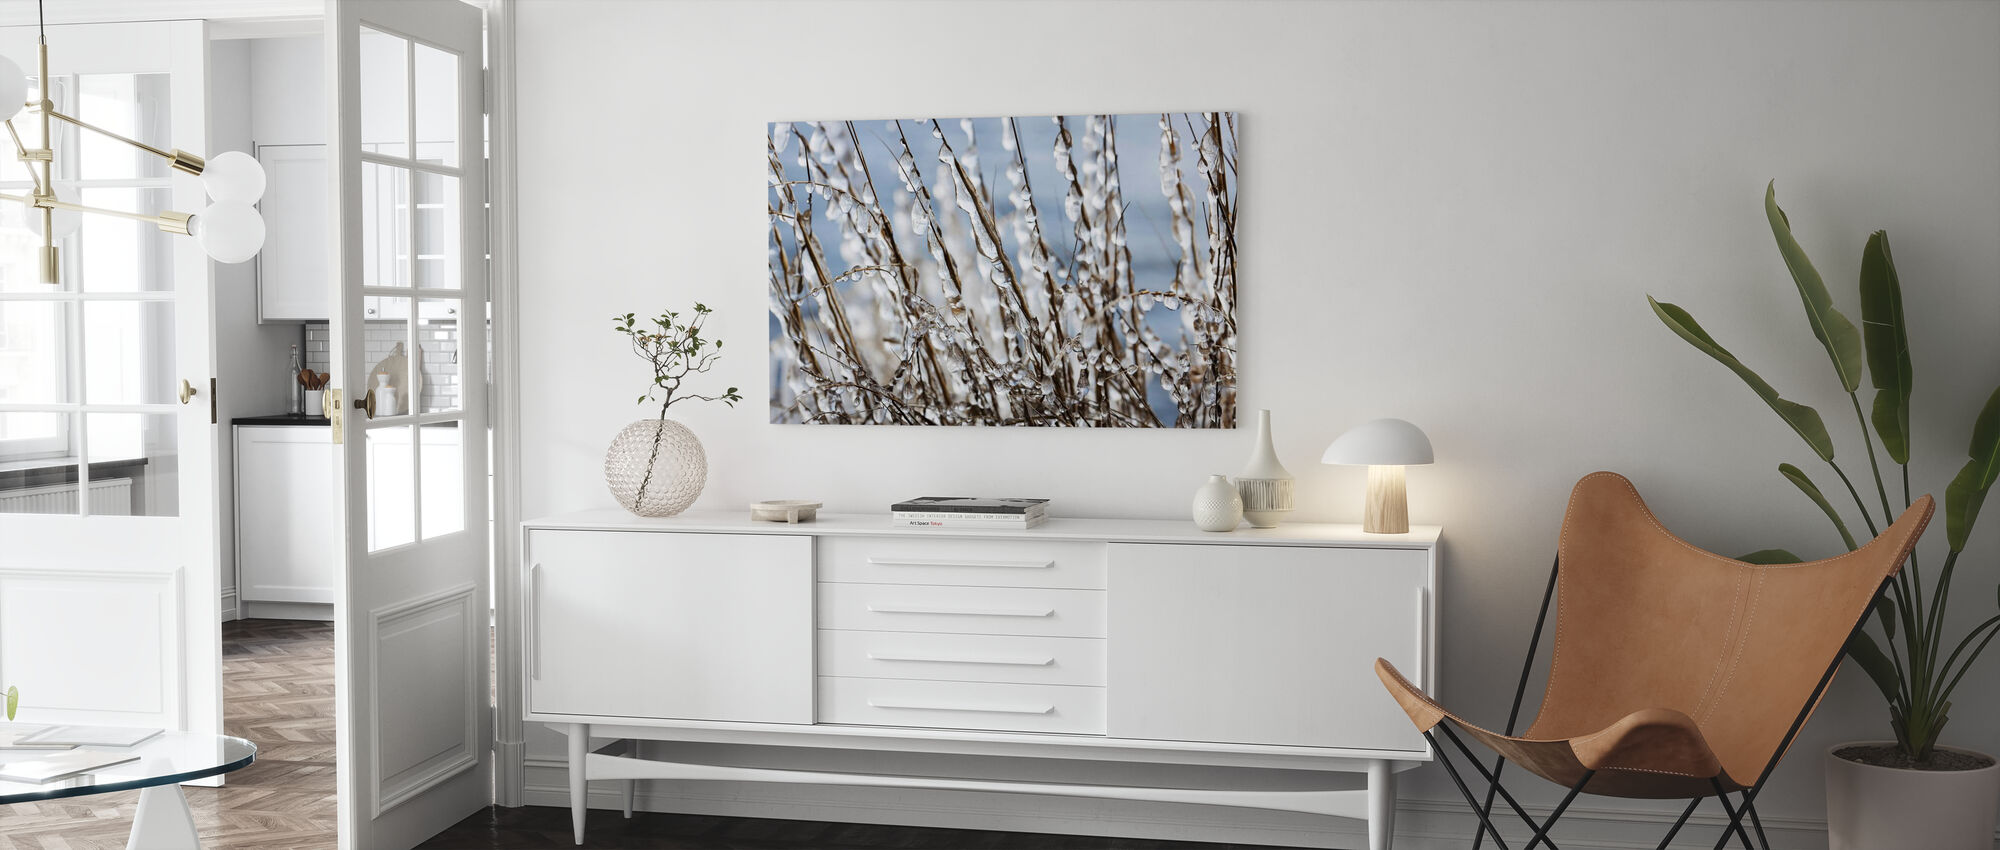 Ice Formations - Canvas print - Living Room